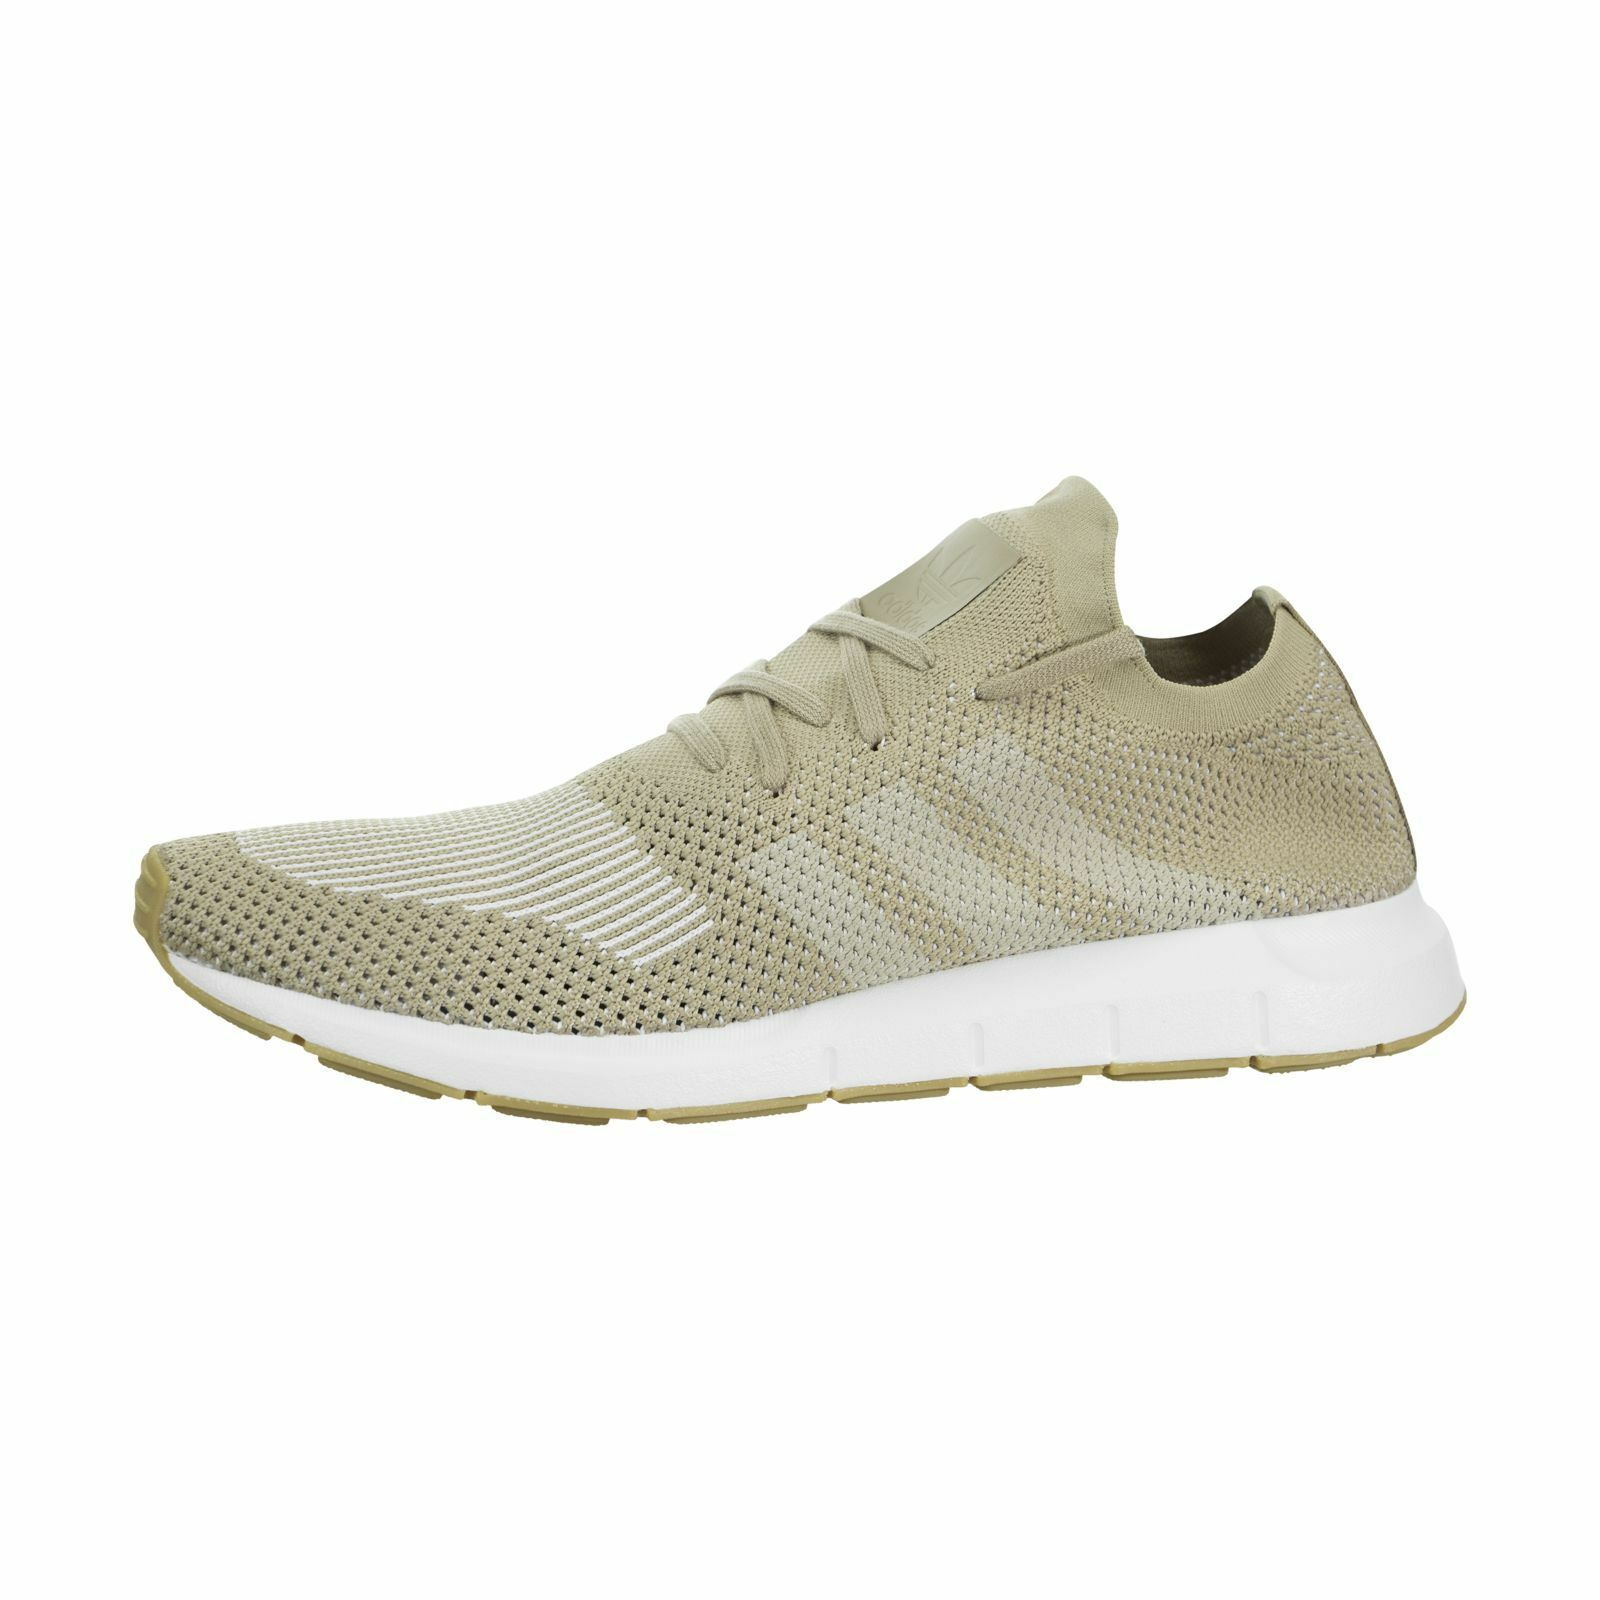 Cheap Nice Adidas Swift Run (Primeknit) on the sale